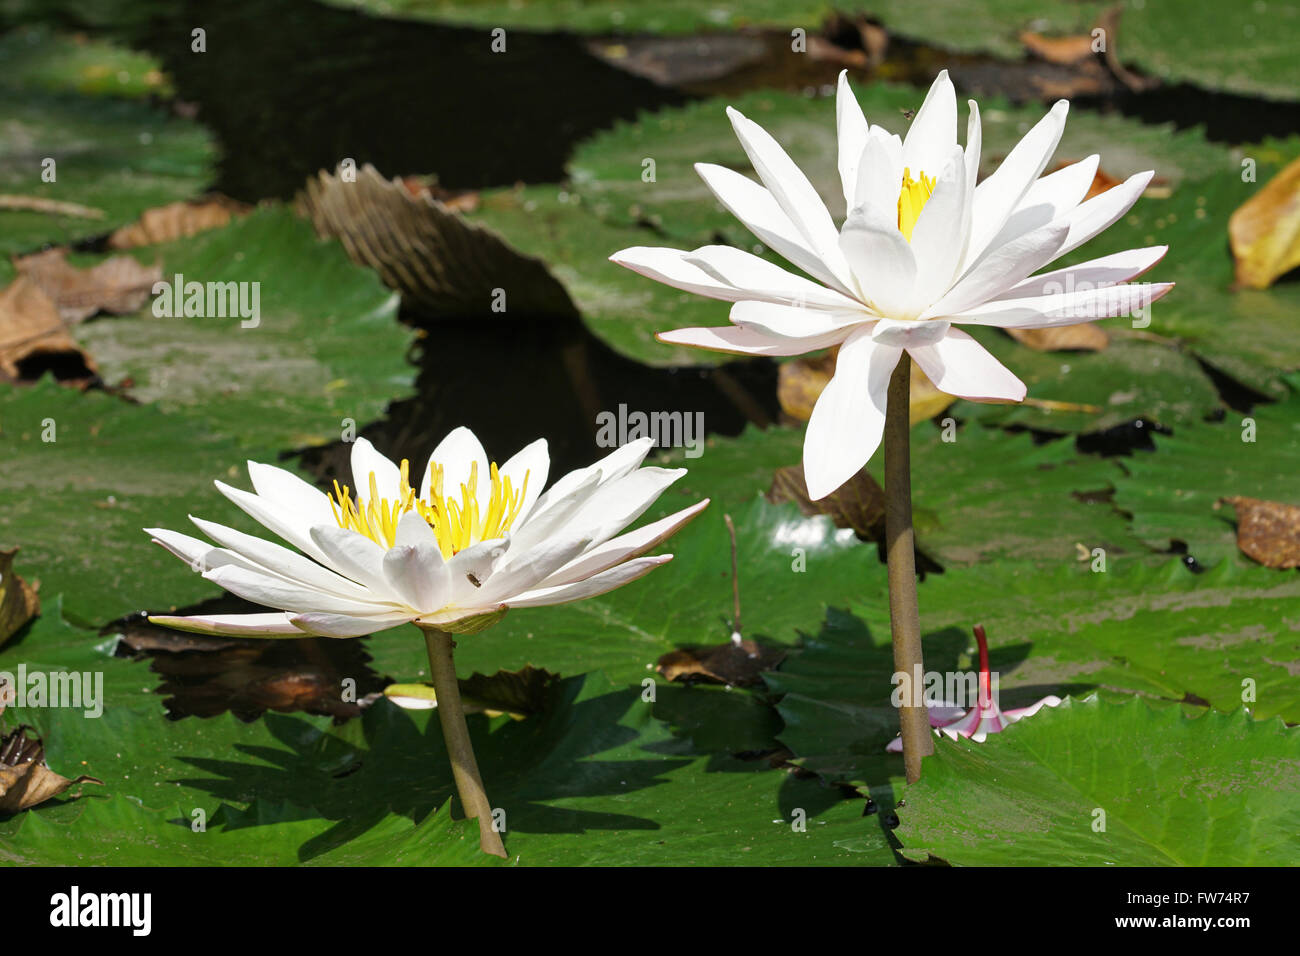 White water lily flowers of bali indonesia stock photo royalty stock photo white water lily flowers of bali indonesia dhlflorist Images